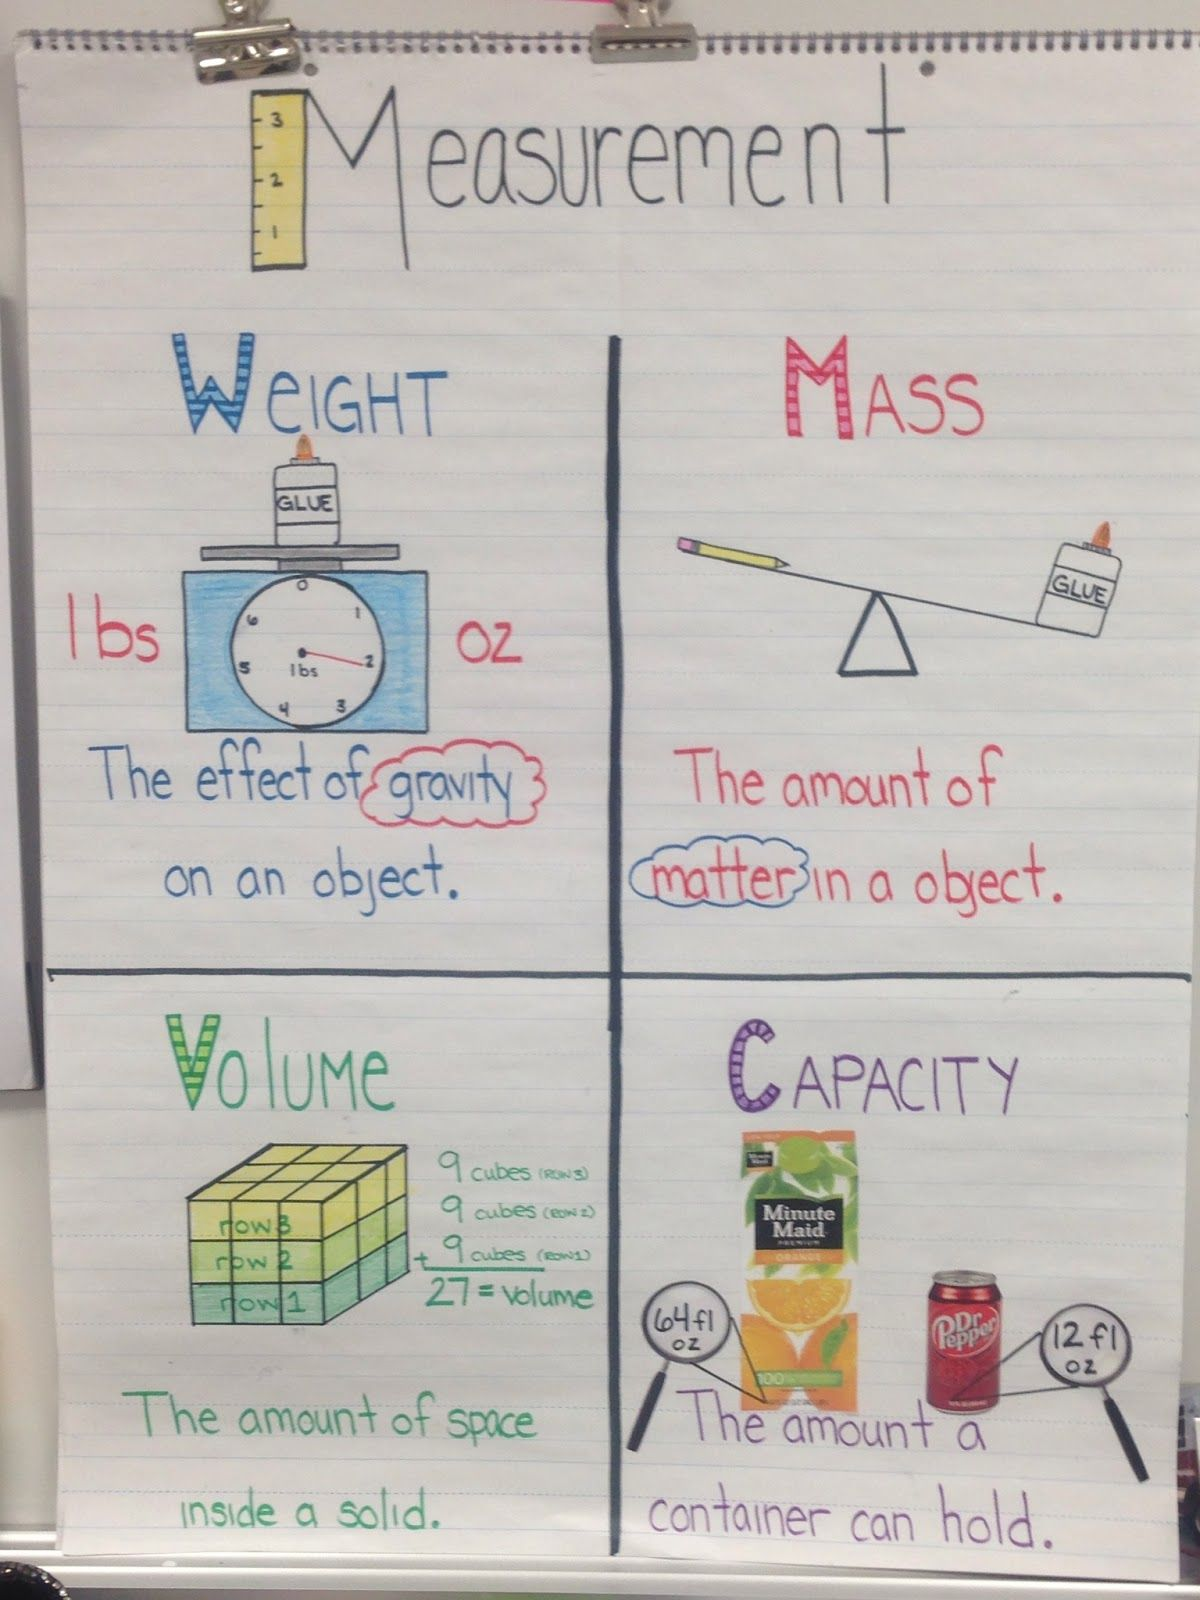 41113 12001600 pixels math projects pinterest math mathscience measurement measurement weightmassvolume and capacity anchor chart along with lesson ideas for teaching measurement nvjuhfo Image collections